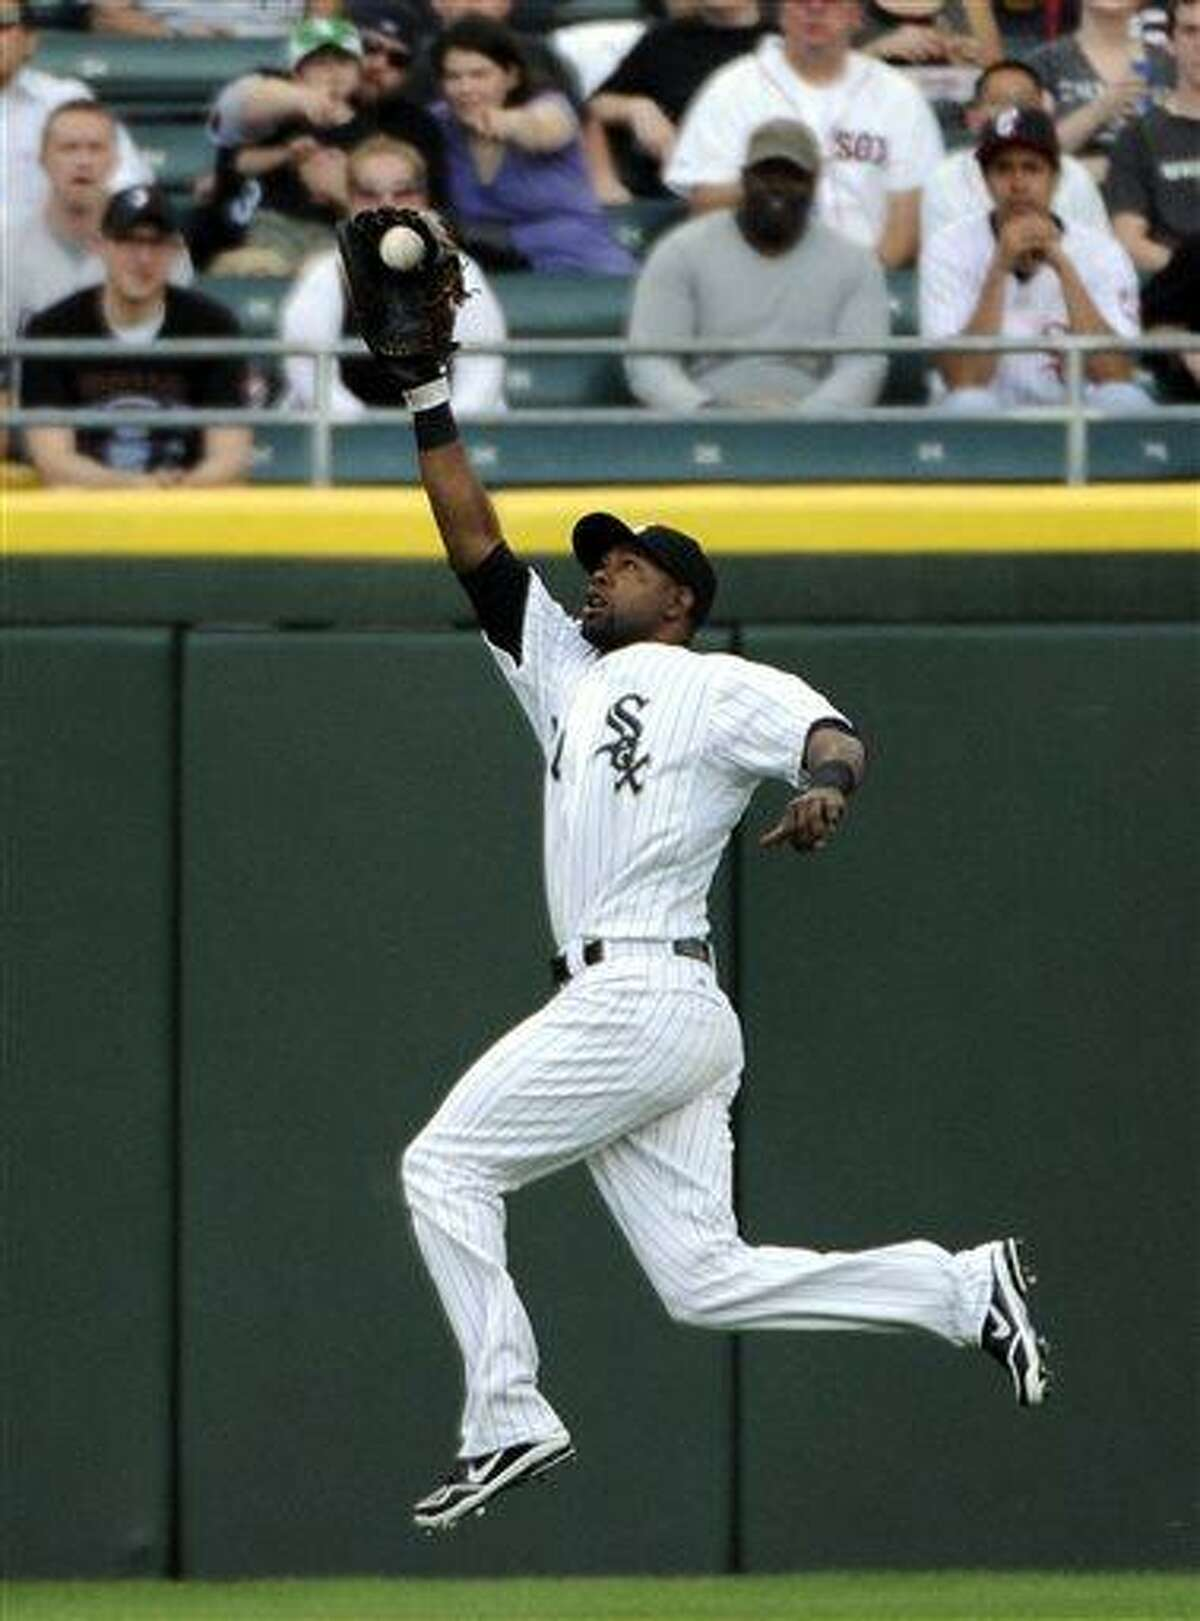 Chicago White Sox center fielder Alejandro De Aza makes a leaping catch on a ball hit by Boston Red Sox's Jacoby Ellsbury during the first inning of a baseball game,Tuesday, May 21, 2013 in Chicago. (AP Photo/David Banks)